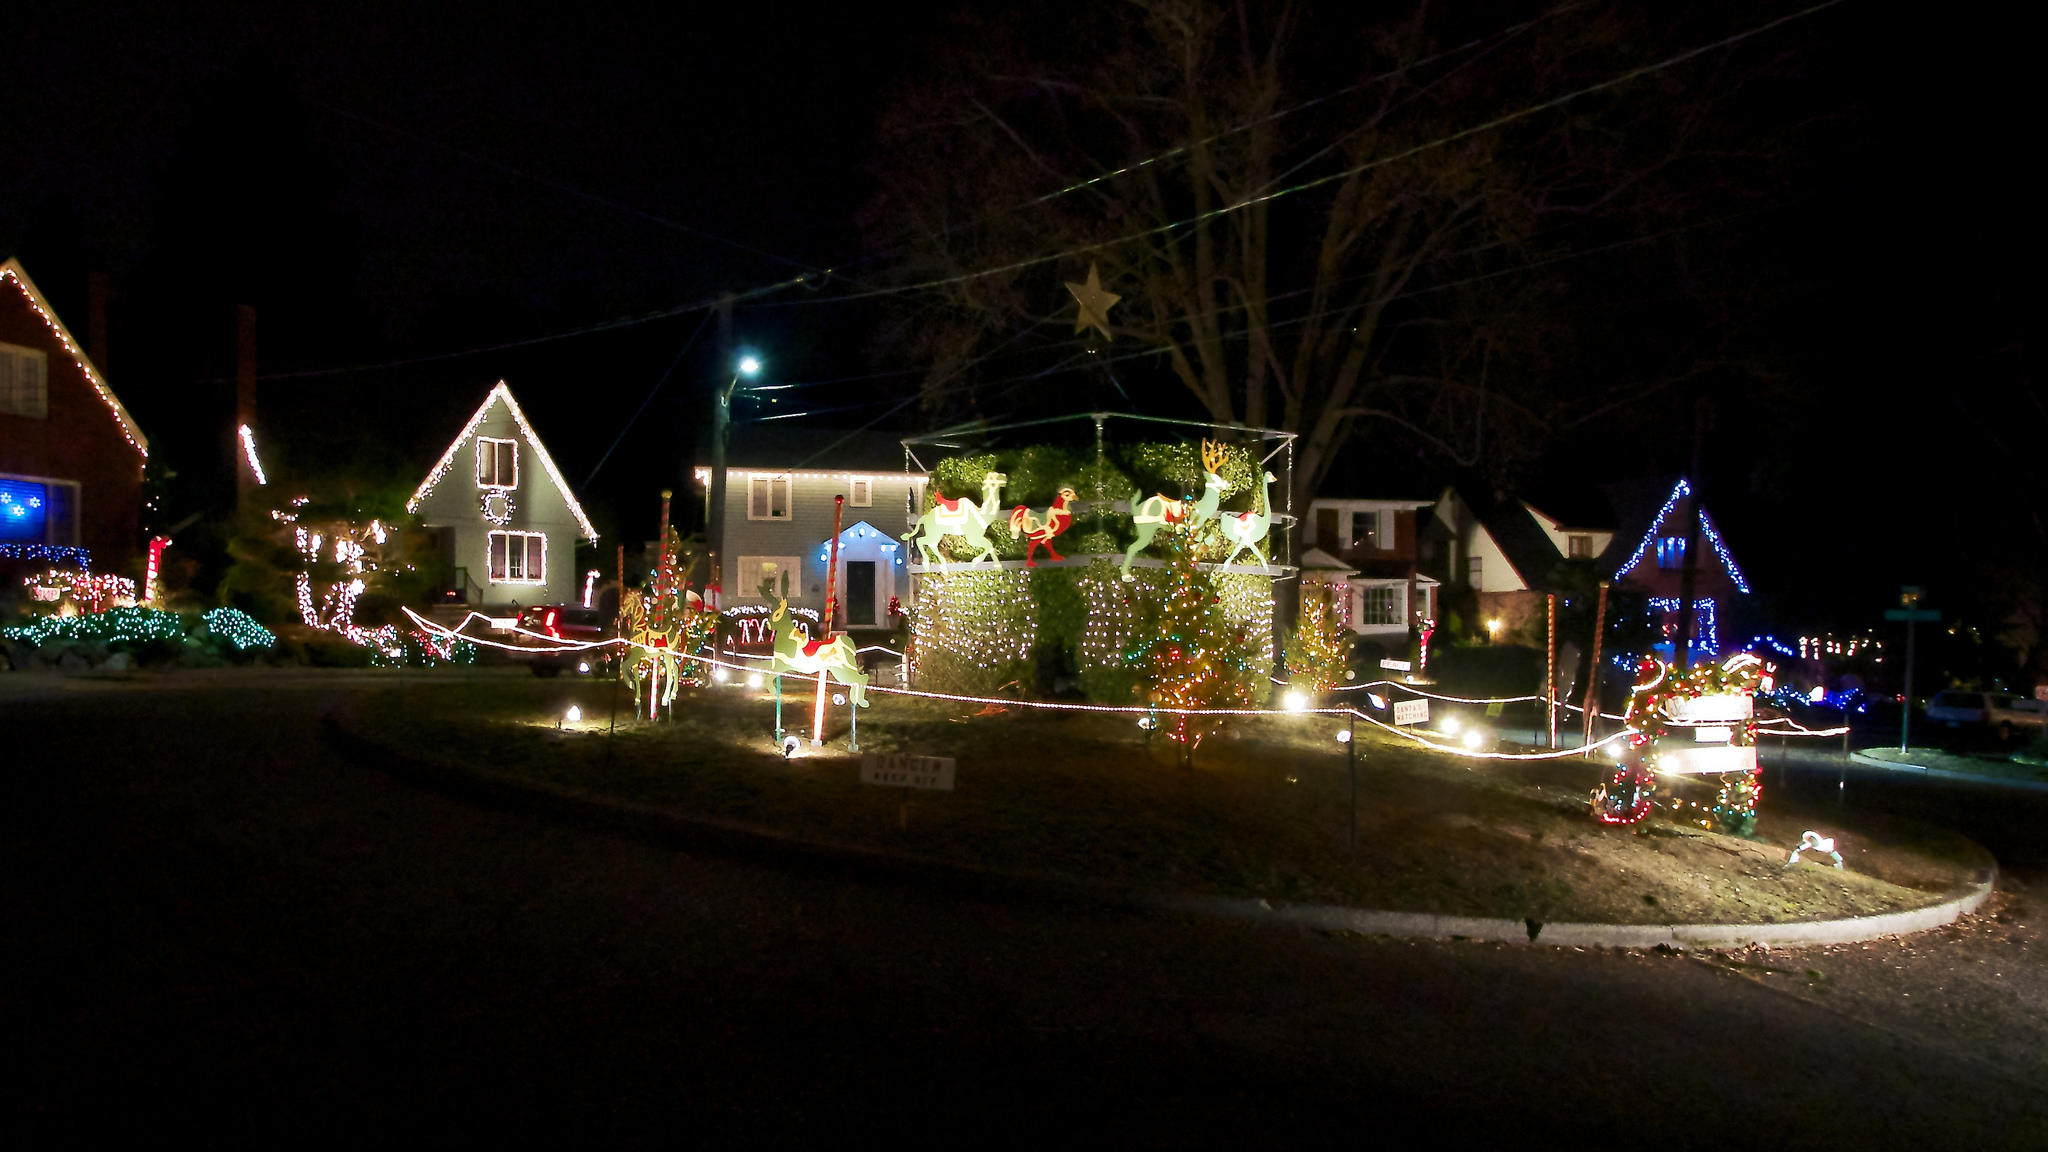 Grinch stealing lights christmas decorations - Candy Cane Lane In 2013 In Seattle S Ravenna Neighborhood